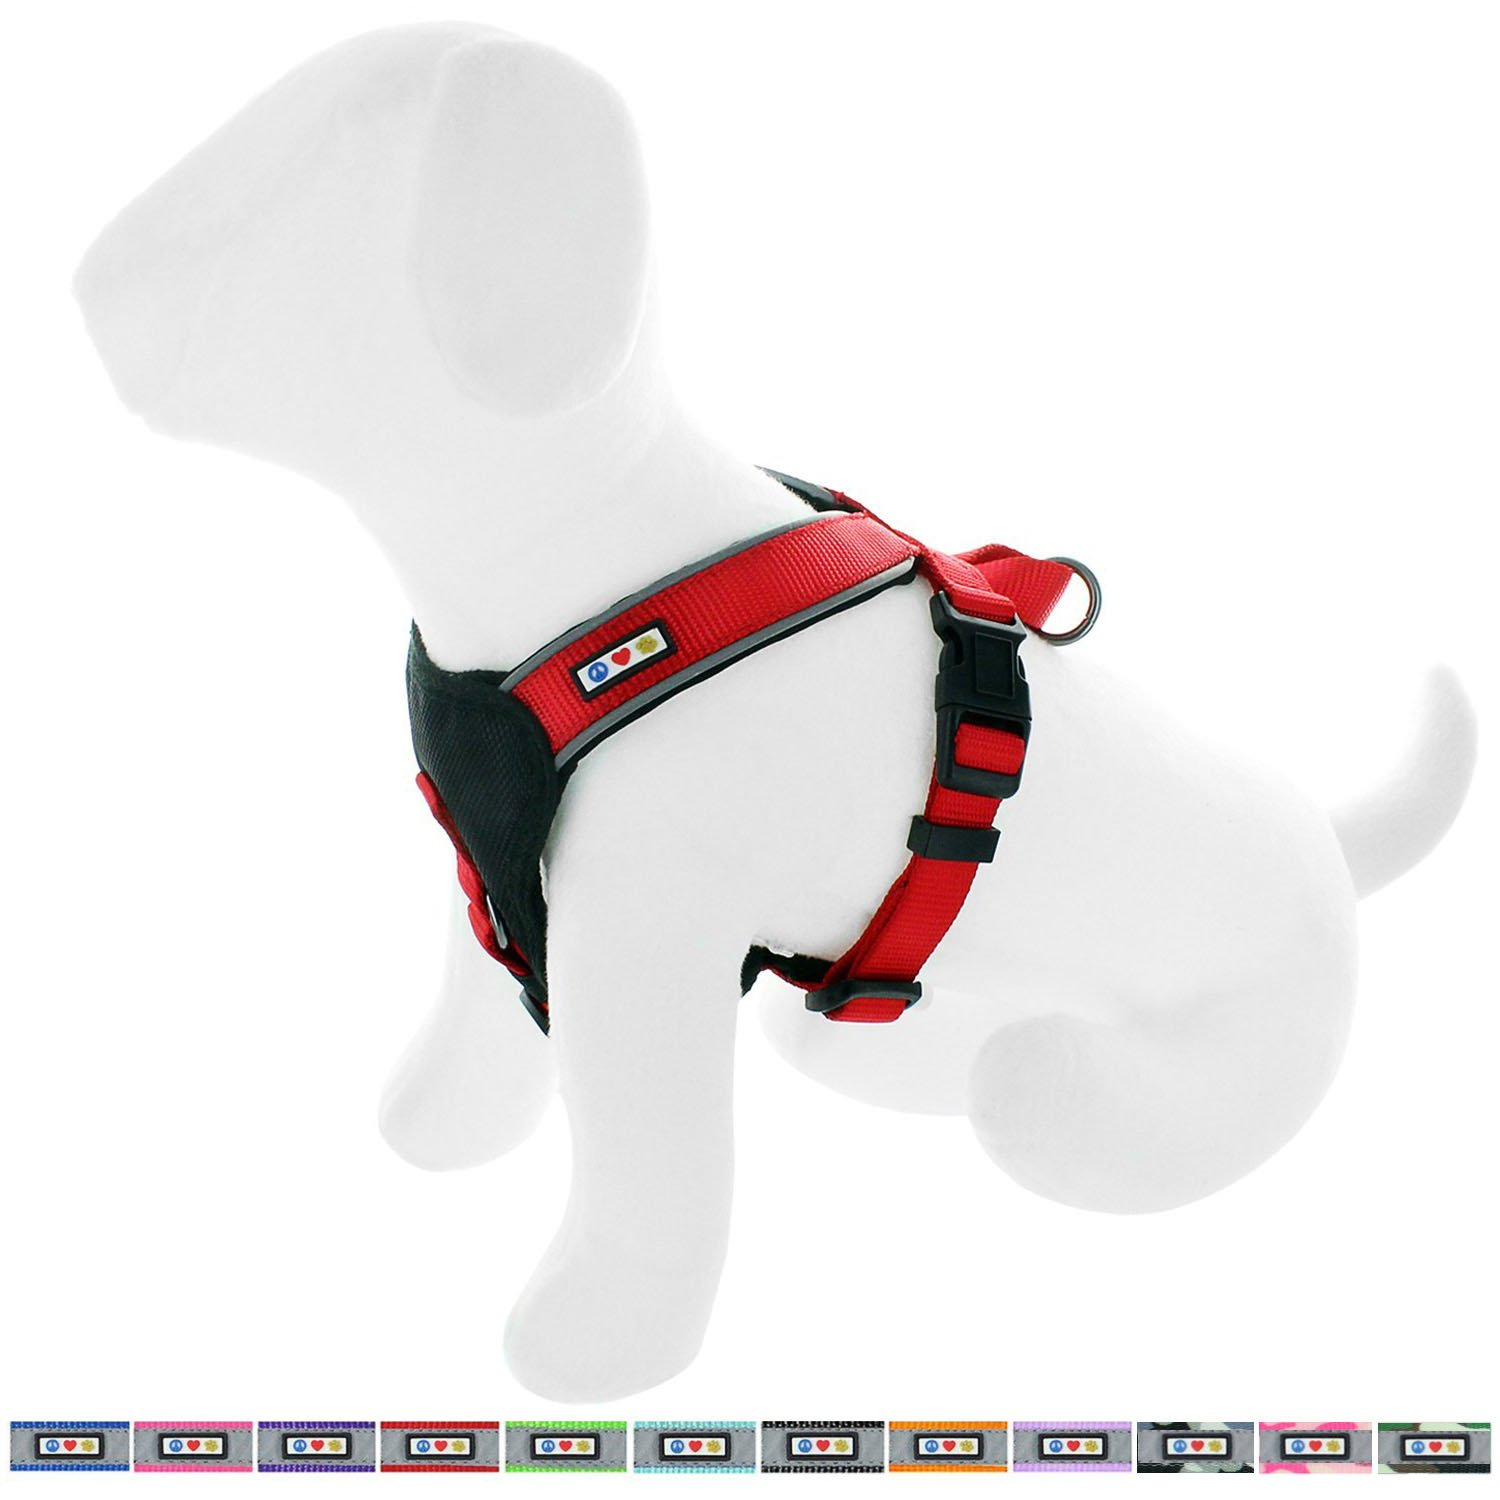 Pawtitas Reflective Dog Harness Padded Dog Harness Red, Large Extra Large L XL